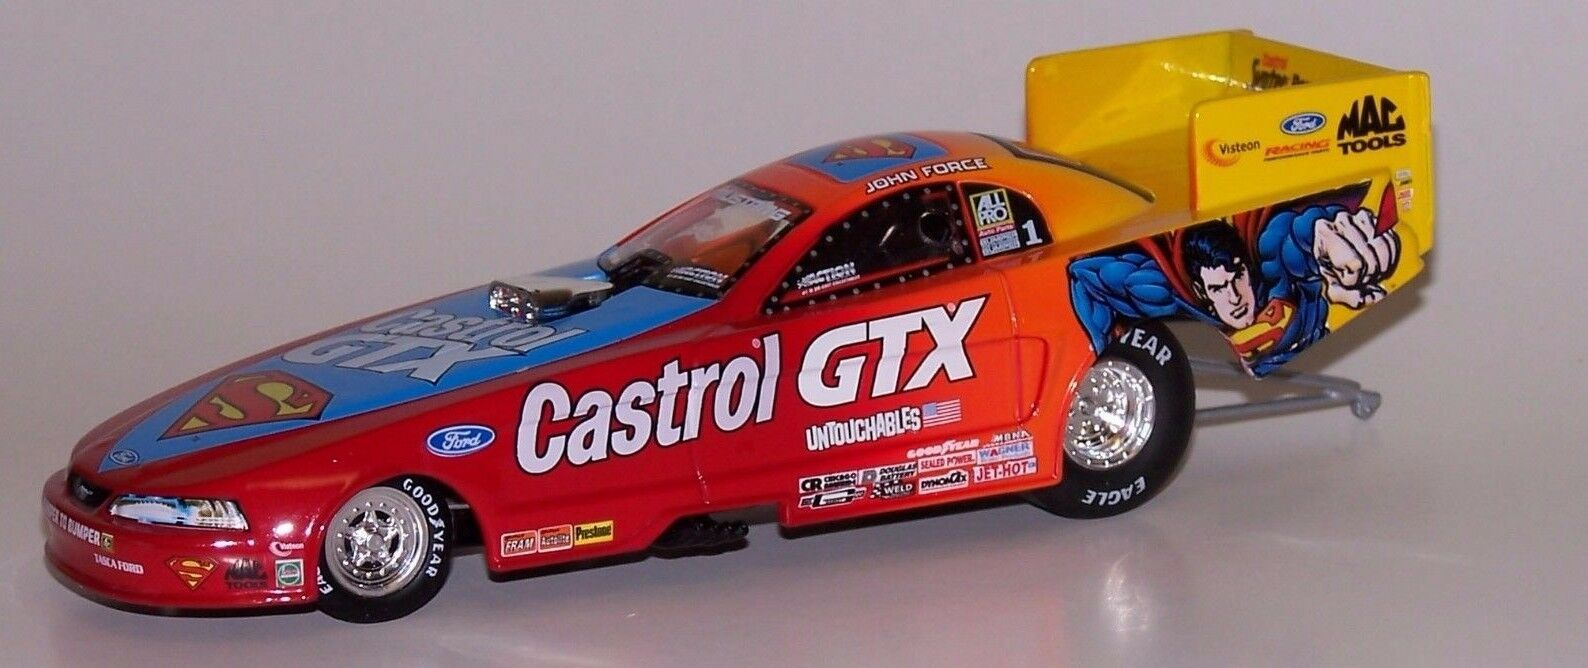 John Force Castrol GTX Superman 1999 Mustang Funny Car Action 1 32 AUTOGRAPHED